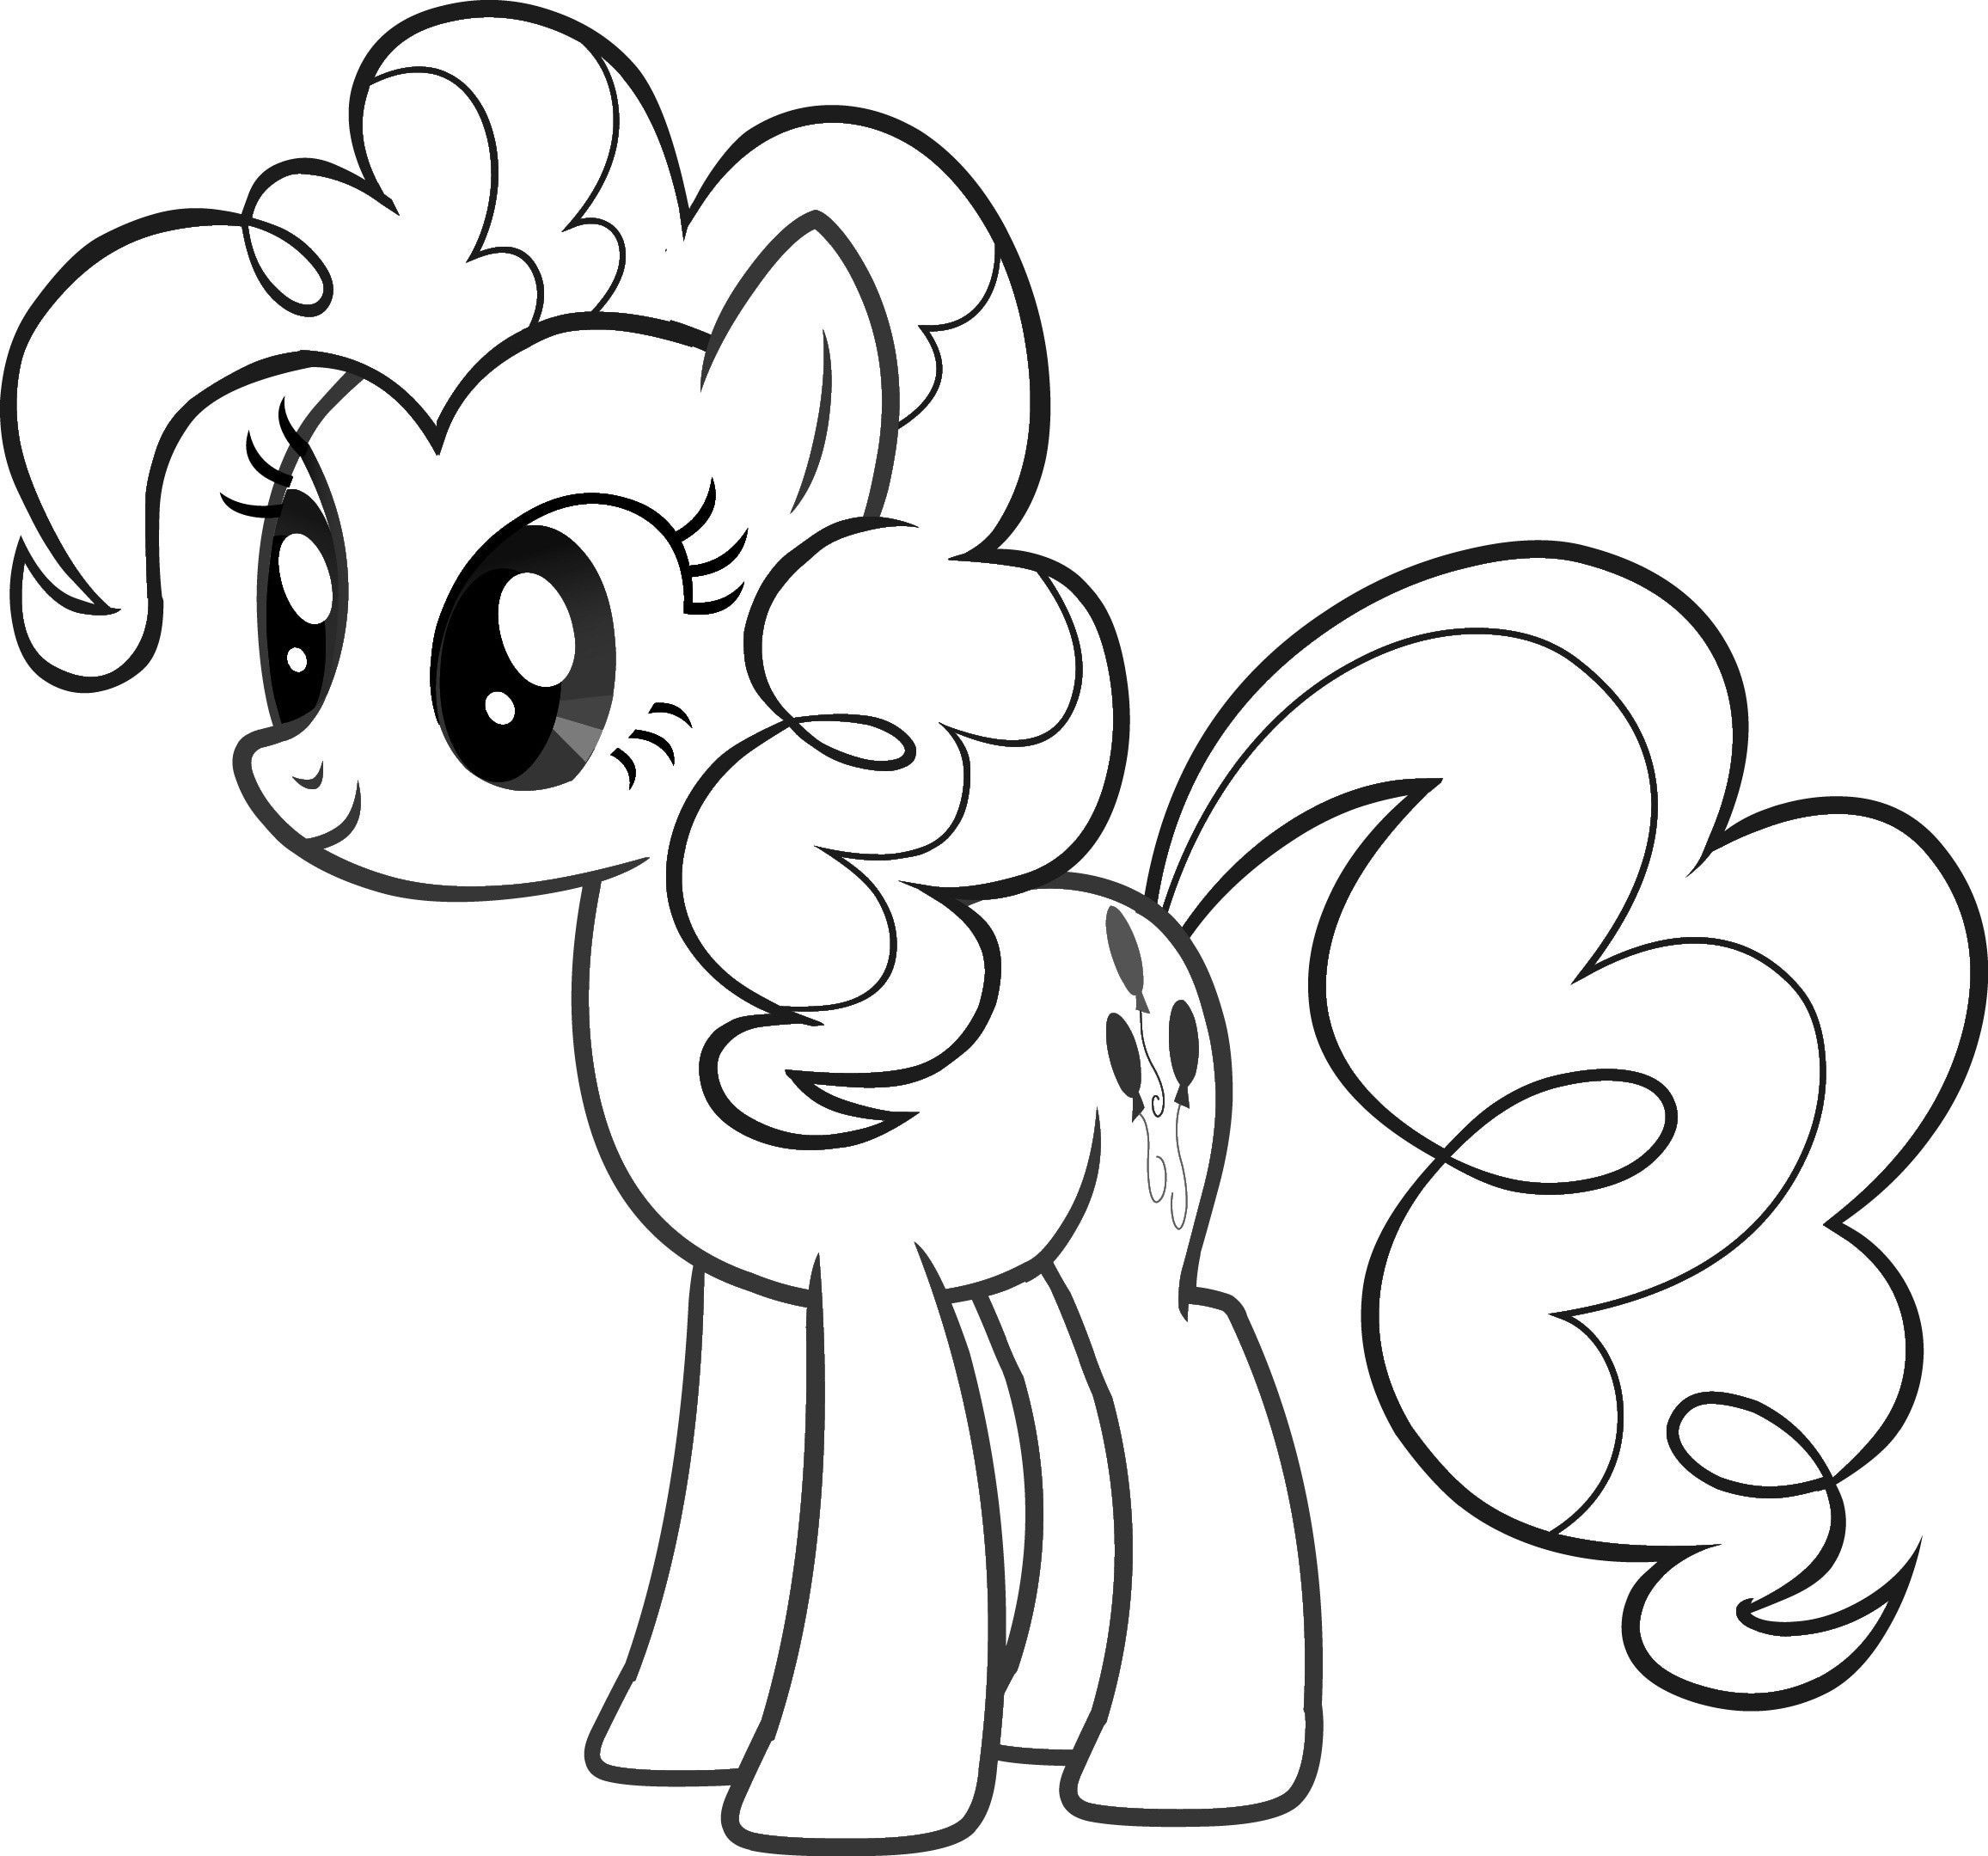 Girl Colouring Pages 9234 Unicorn Coloring Pages My Little Pony Printable My Little Pony Coloring